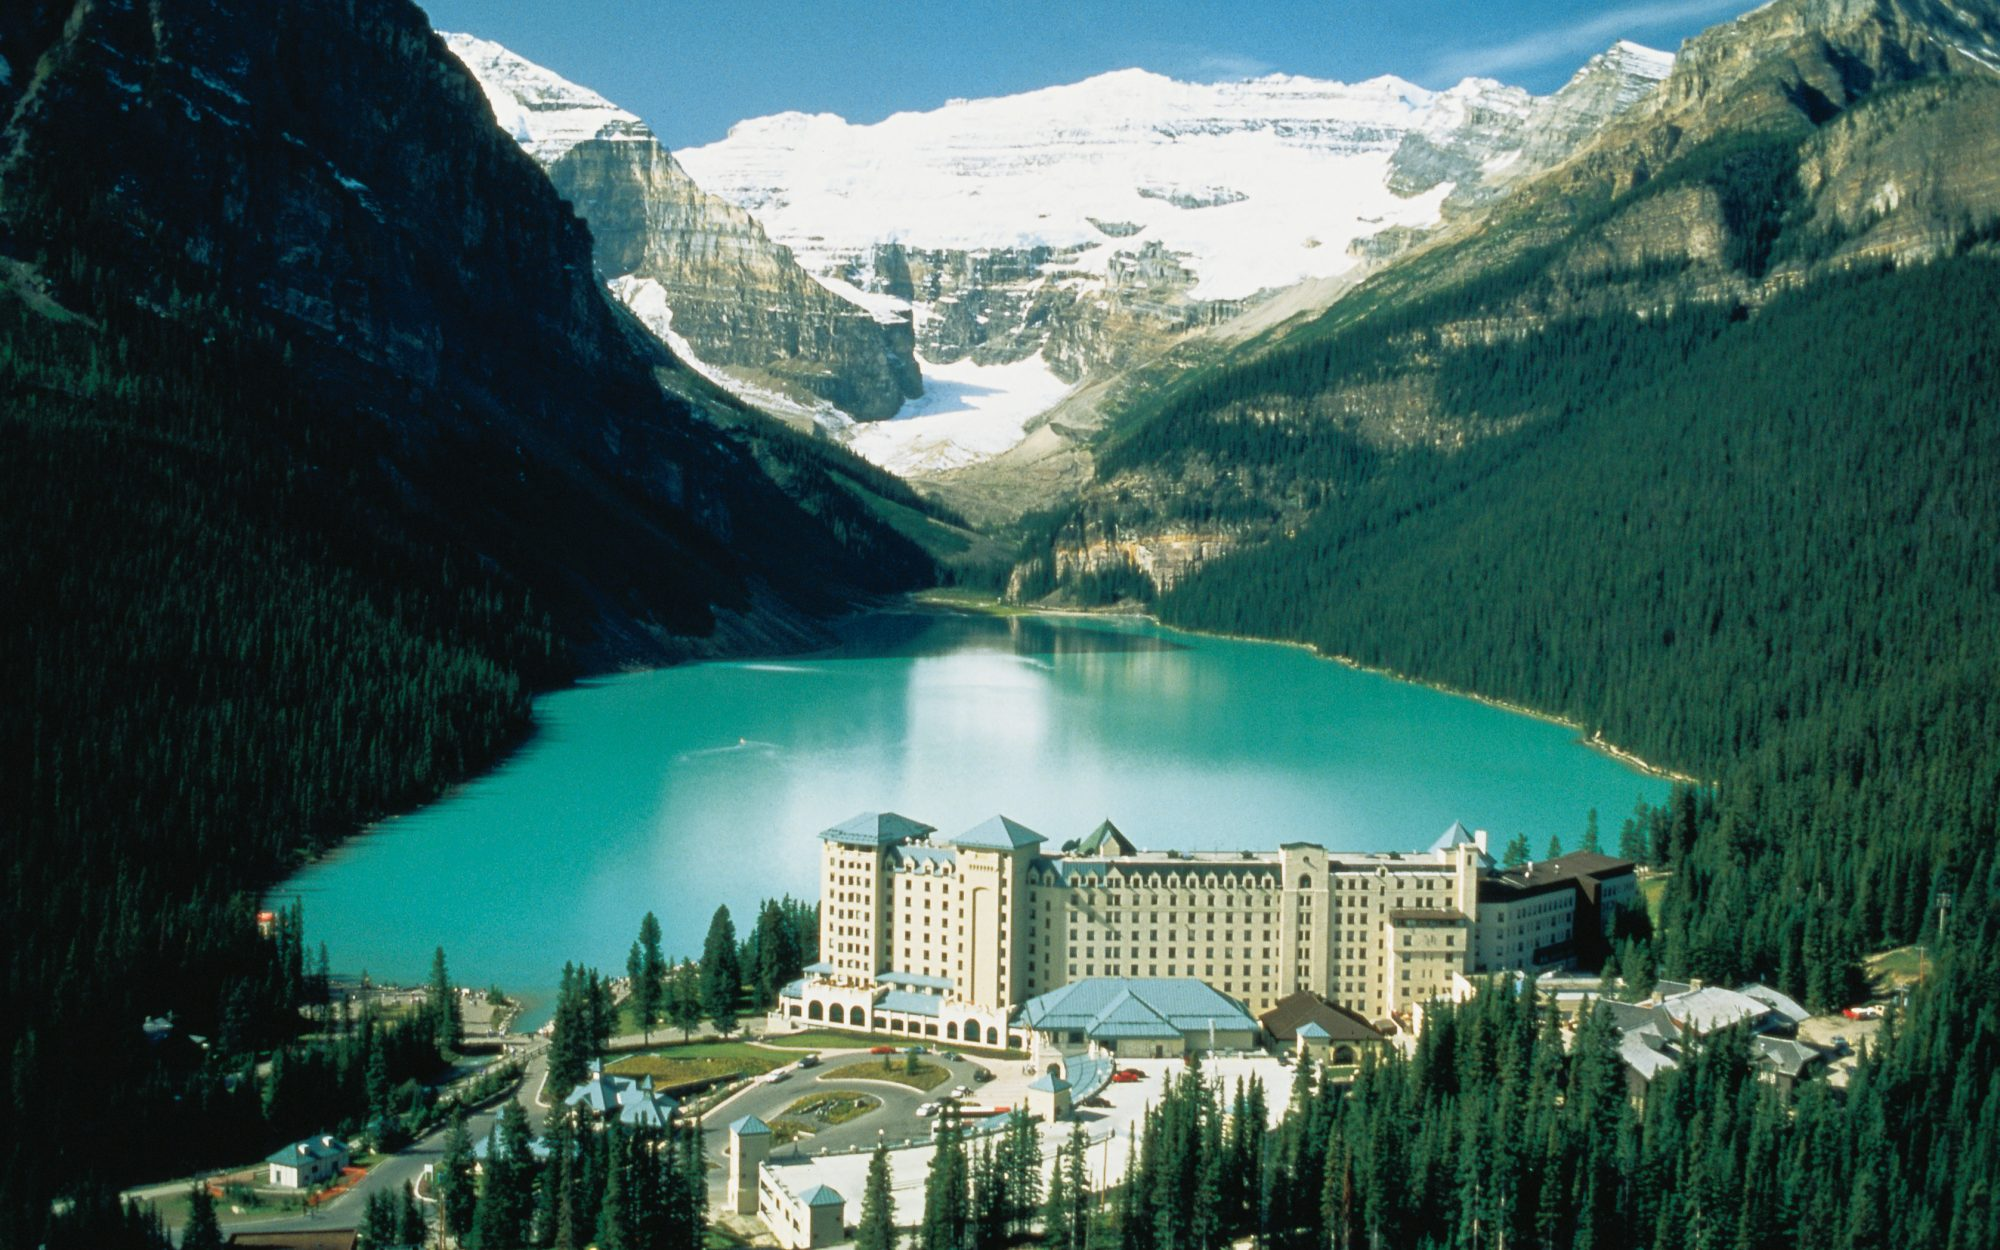 Fairmont Chateau Lake Louise, Banff National Park, Alberta, Canada